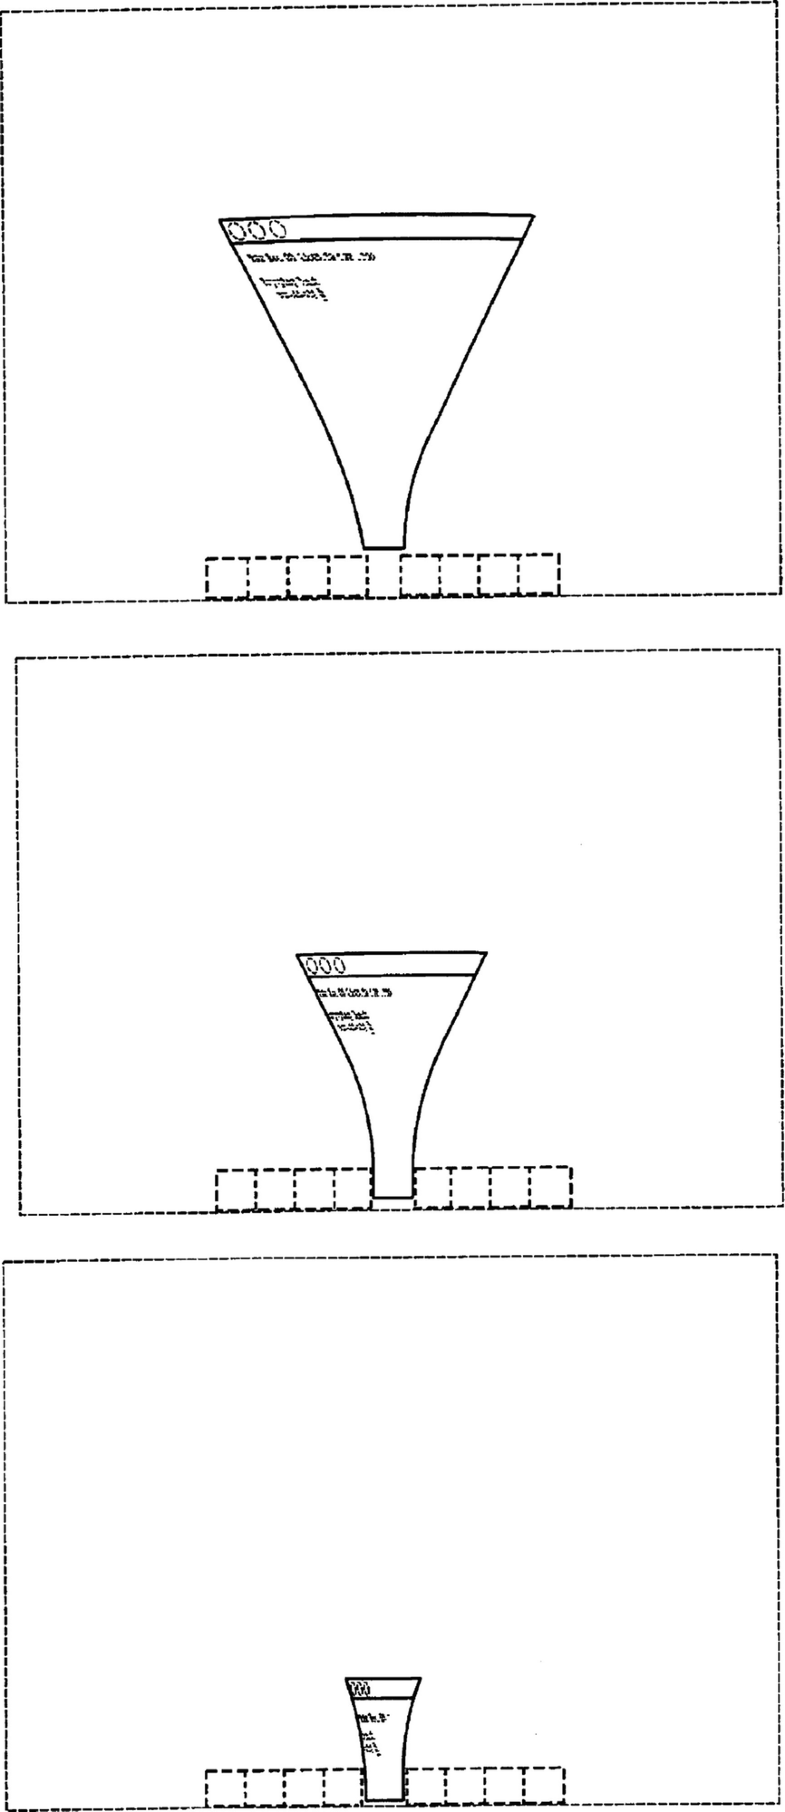 Fig. 10.9